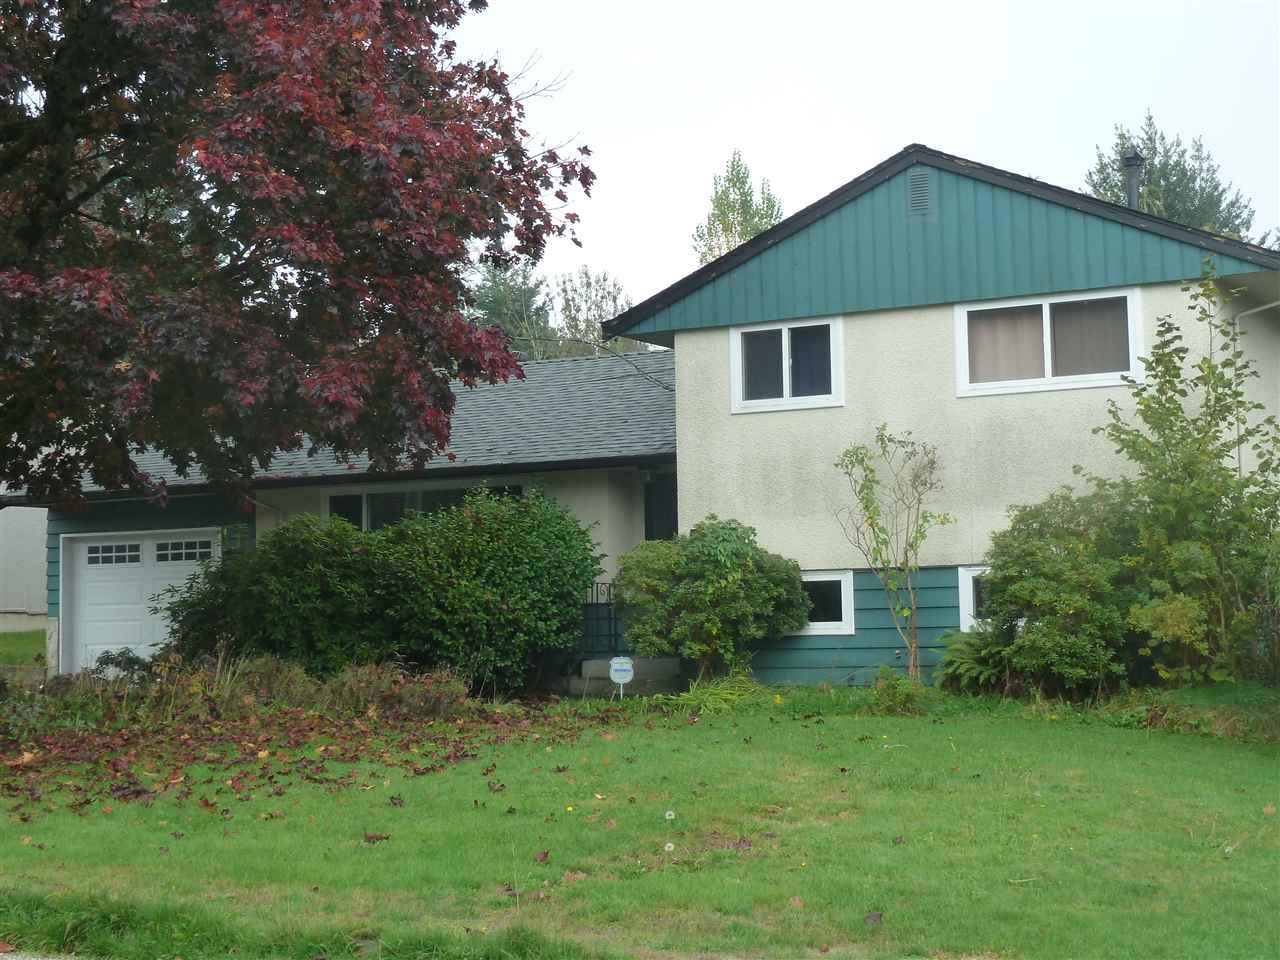 """Main Photo: 11502 94A Avenue in Delta: Annieville House for sale in """"ANNIEVILLE"""" (N. Delta)  : MLS®# R2009652"""